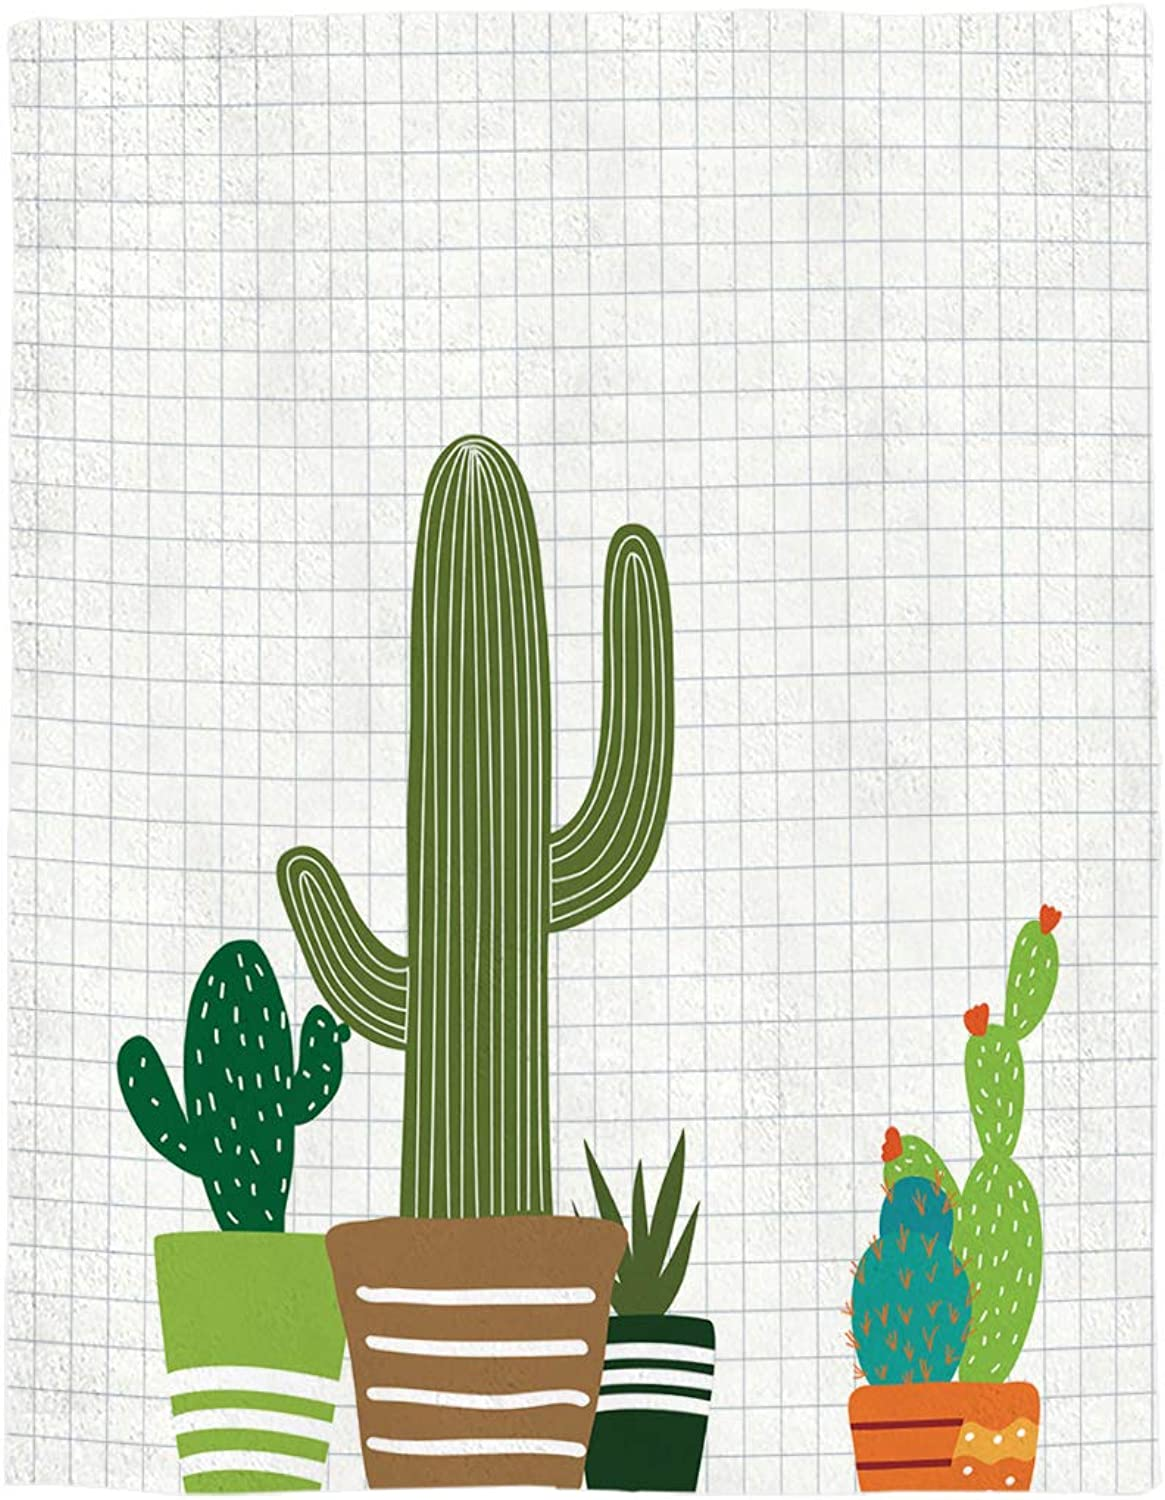 YEHO Art Gallery Flannel Fleece Bed Blanket Soft ThrowBlankets Home Decor,Cartoon Cacti Plant Pattern,Lightweight Cozy Plush Blankets for Bedroom Living Room Sofa Couch,49 x 59 Inch